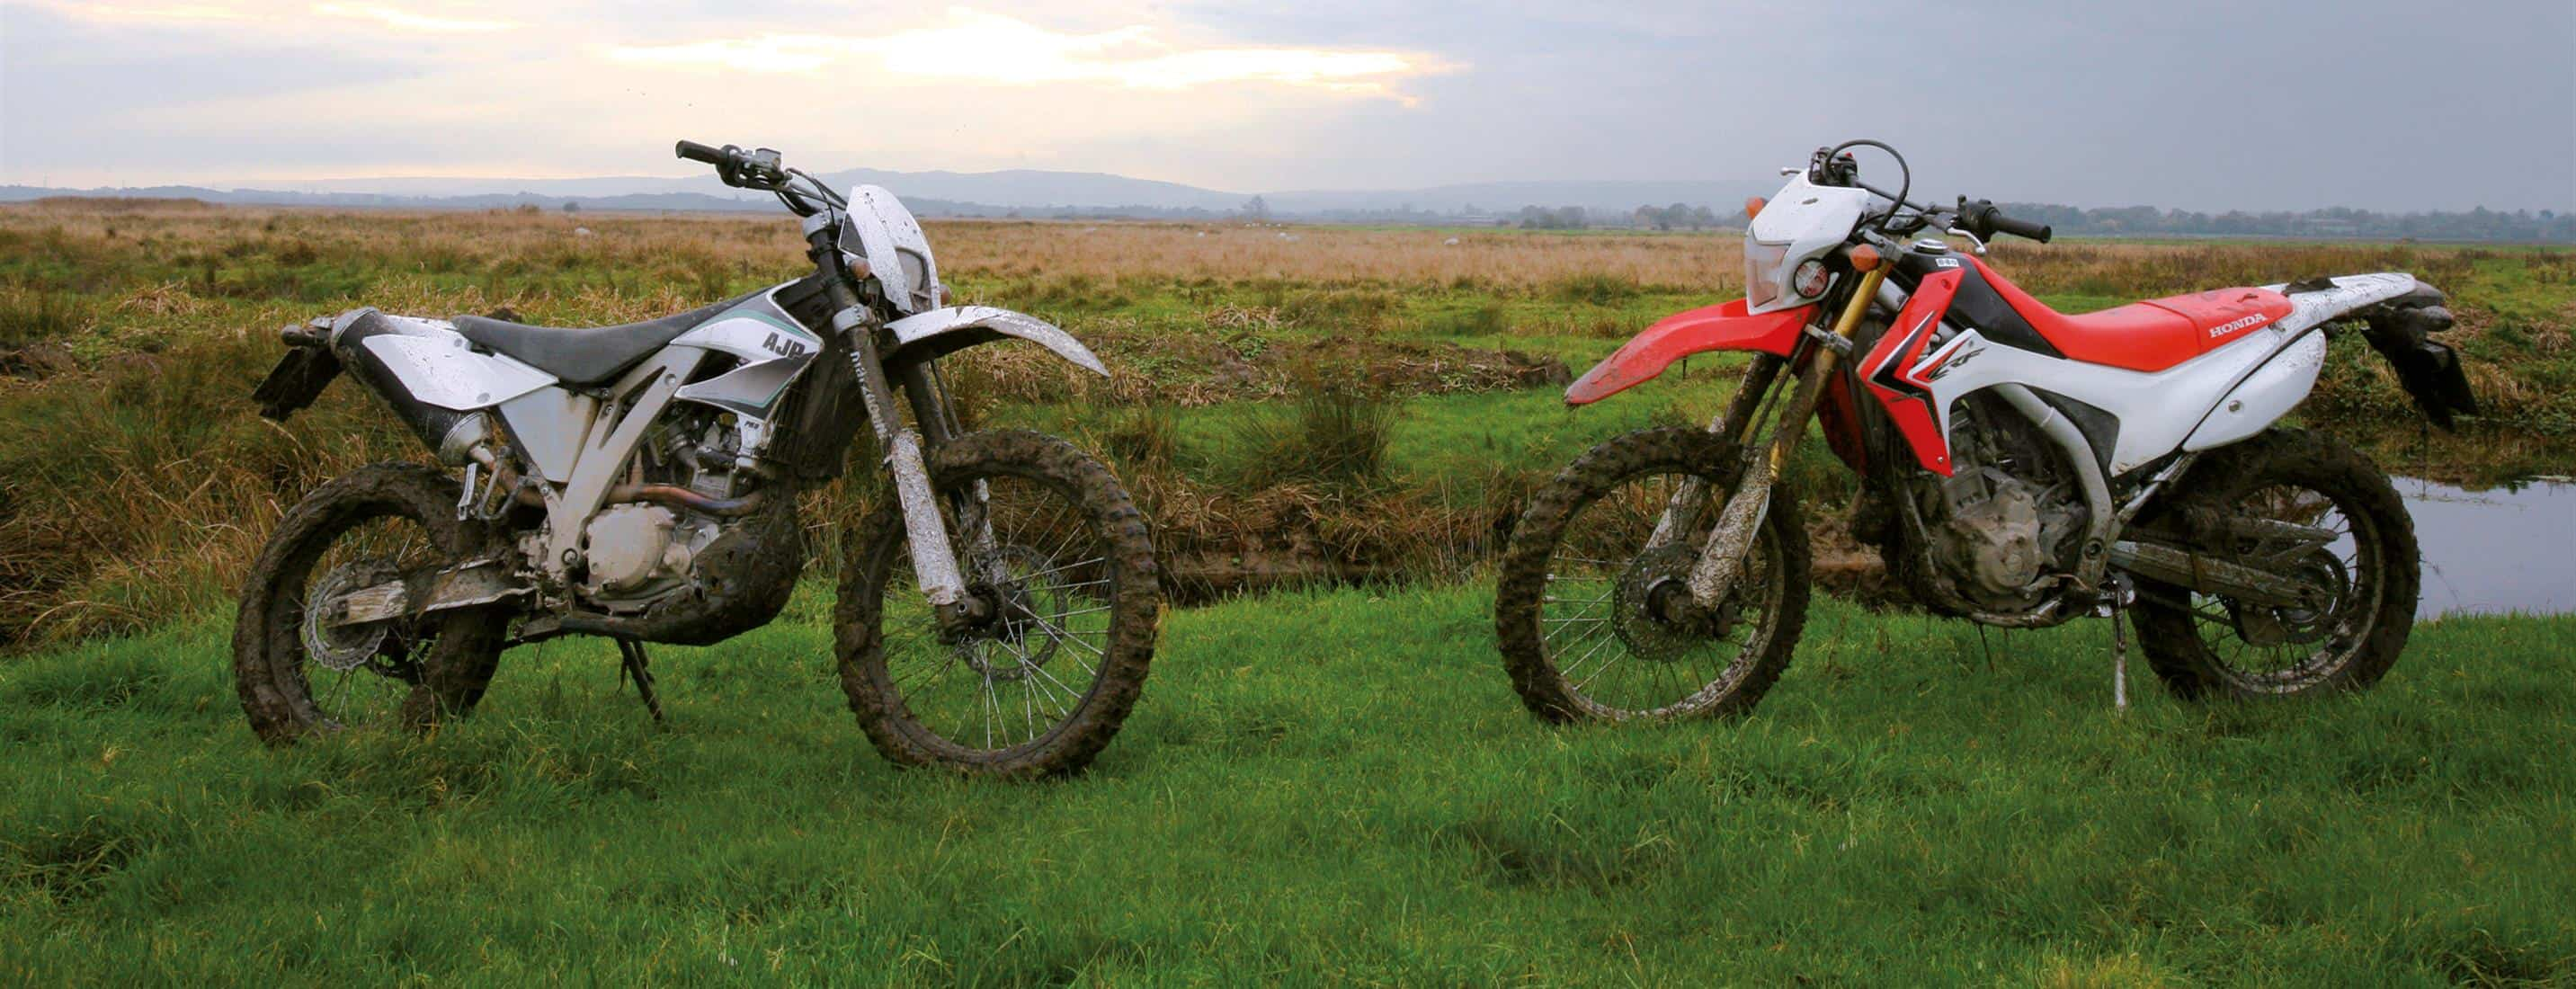 TRAIL TEST – AJP PR5 VS HONDA CRF250-L